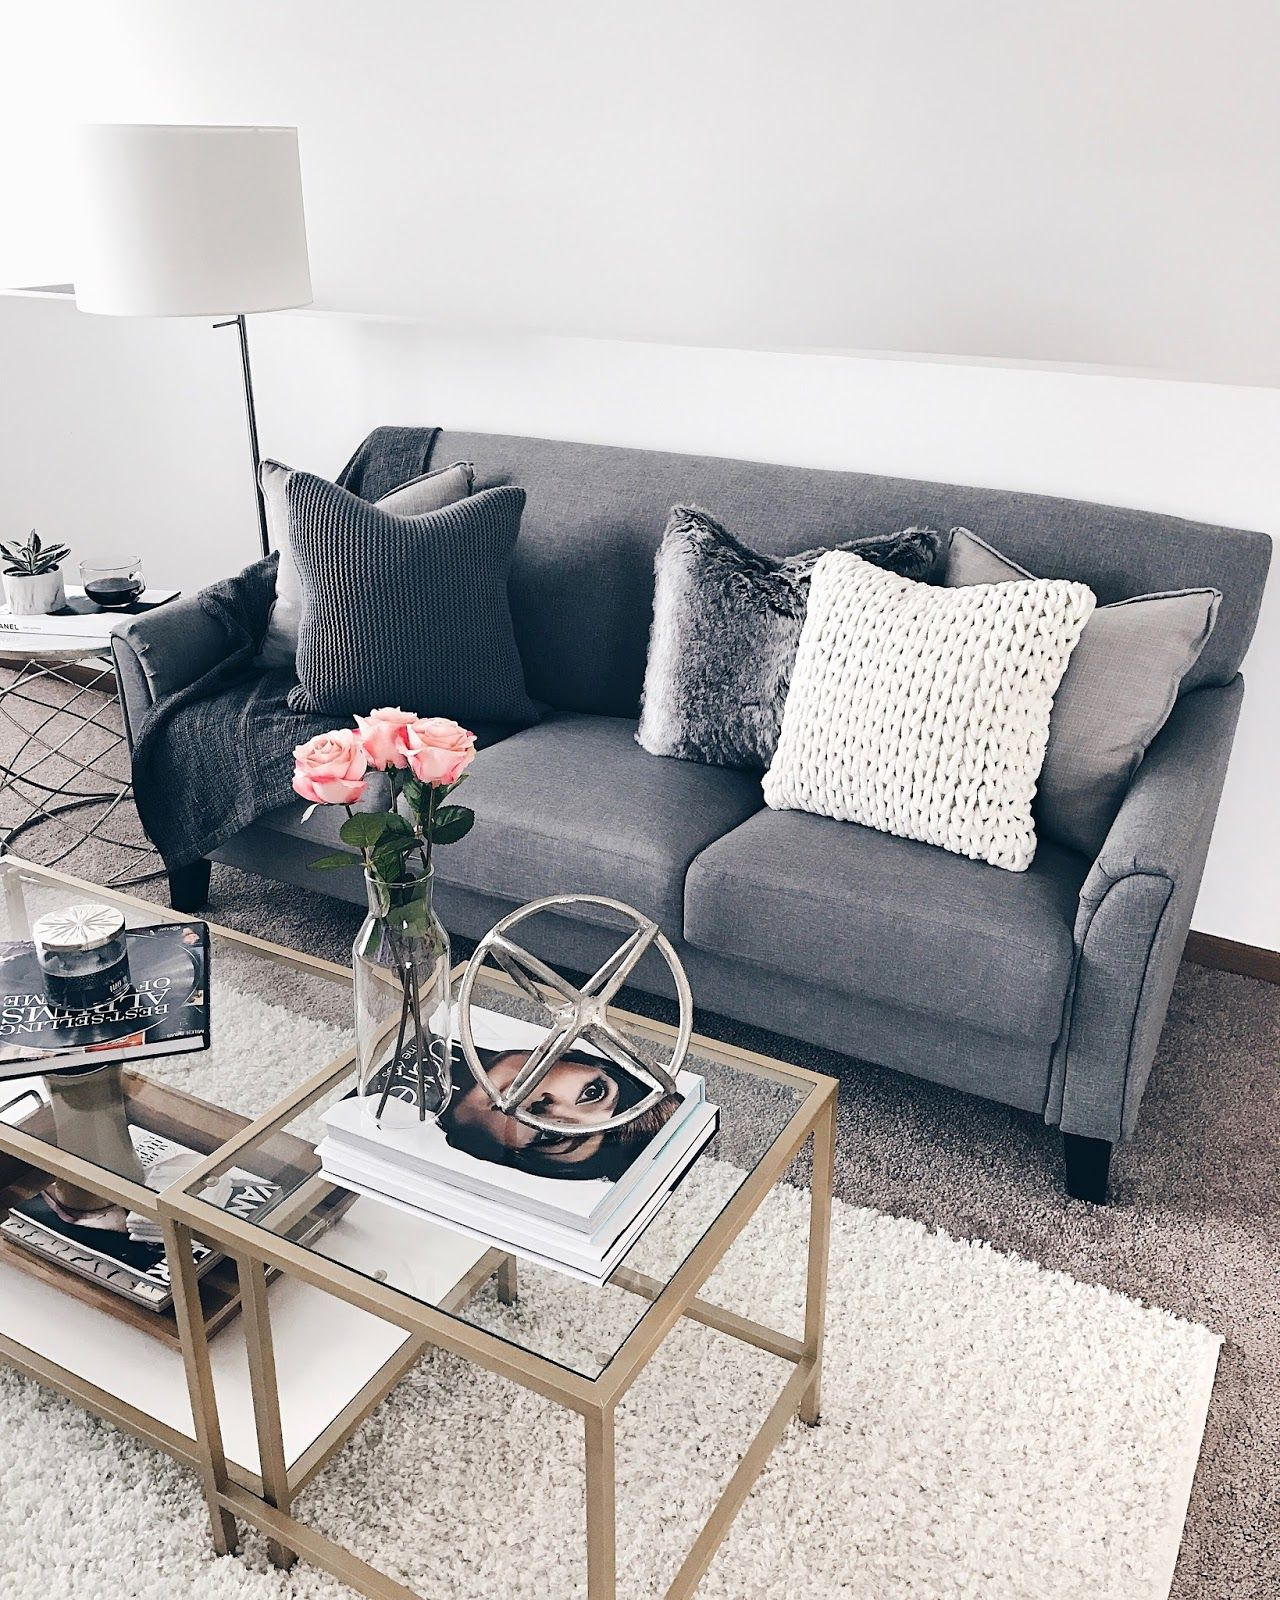 Cozy Pillows Grey Couch Fashionably Kay Grey Couch Decor Grey Couch Living Room Couches Living Room